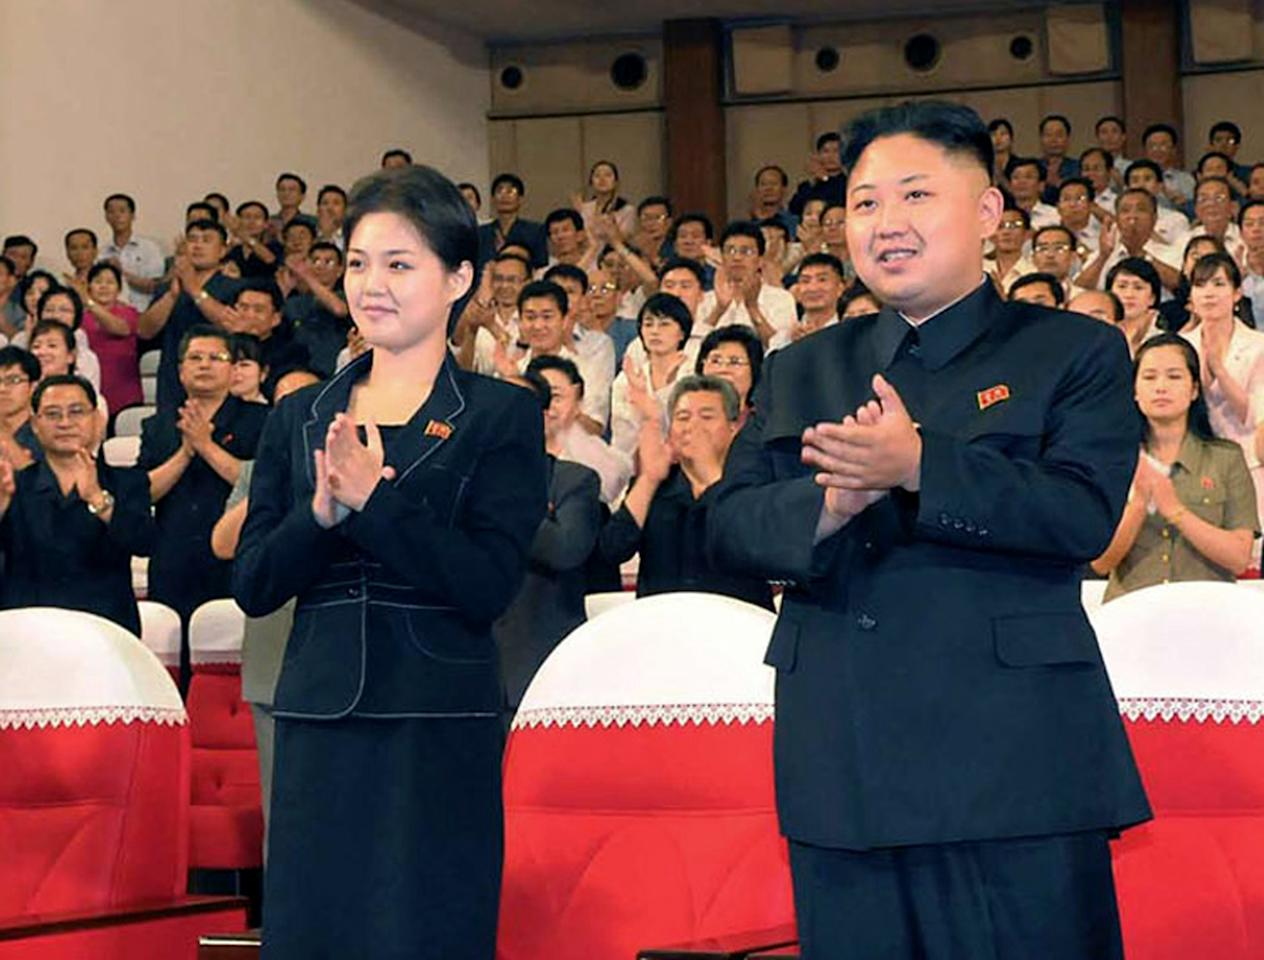 "FILE - This is a file photo made available on Monday July 9, 2012 by the Korean Central News Agency (KCNA) and distributed in Tokyo by the Korea News Service of North Korean leader Kim Jong Un, right, and Ri Sol Ju as they clap with others during a performance by North Korea's new Moranbong band in Pyongyang, North Korea earlier in July. North Korea's new, young leader Kim Jong Un is married, state TV reported Wednesday July 25, 2012 for the first time in a brief and otherwise routine announcement that ends weeks of speculation about a beautiful woman who has accompanied him to recent public events. Kim toured an amusement park with his ""wife, comrade Ri Sol Ju"" on Tuesday, while a crowd cheered for the leader, the news anchor said without giving any more details about Ri, including how long they had been married. (AP Photo/Korean Central News Agency via Korea News Service, File)"